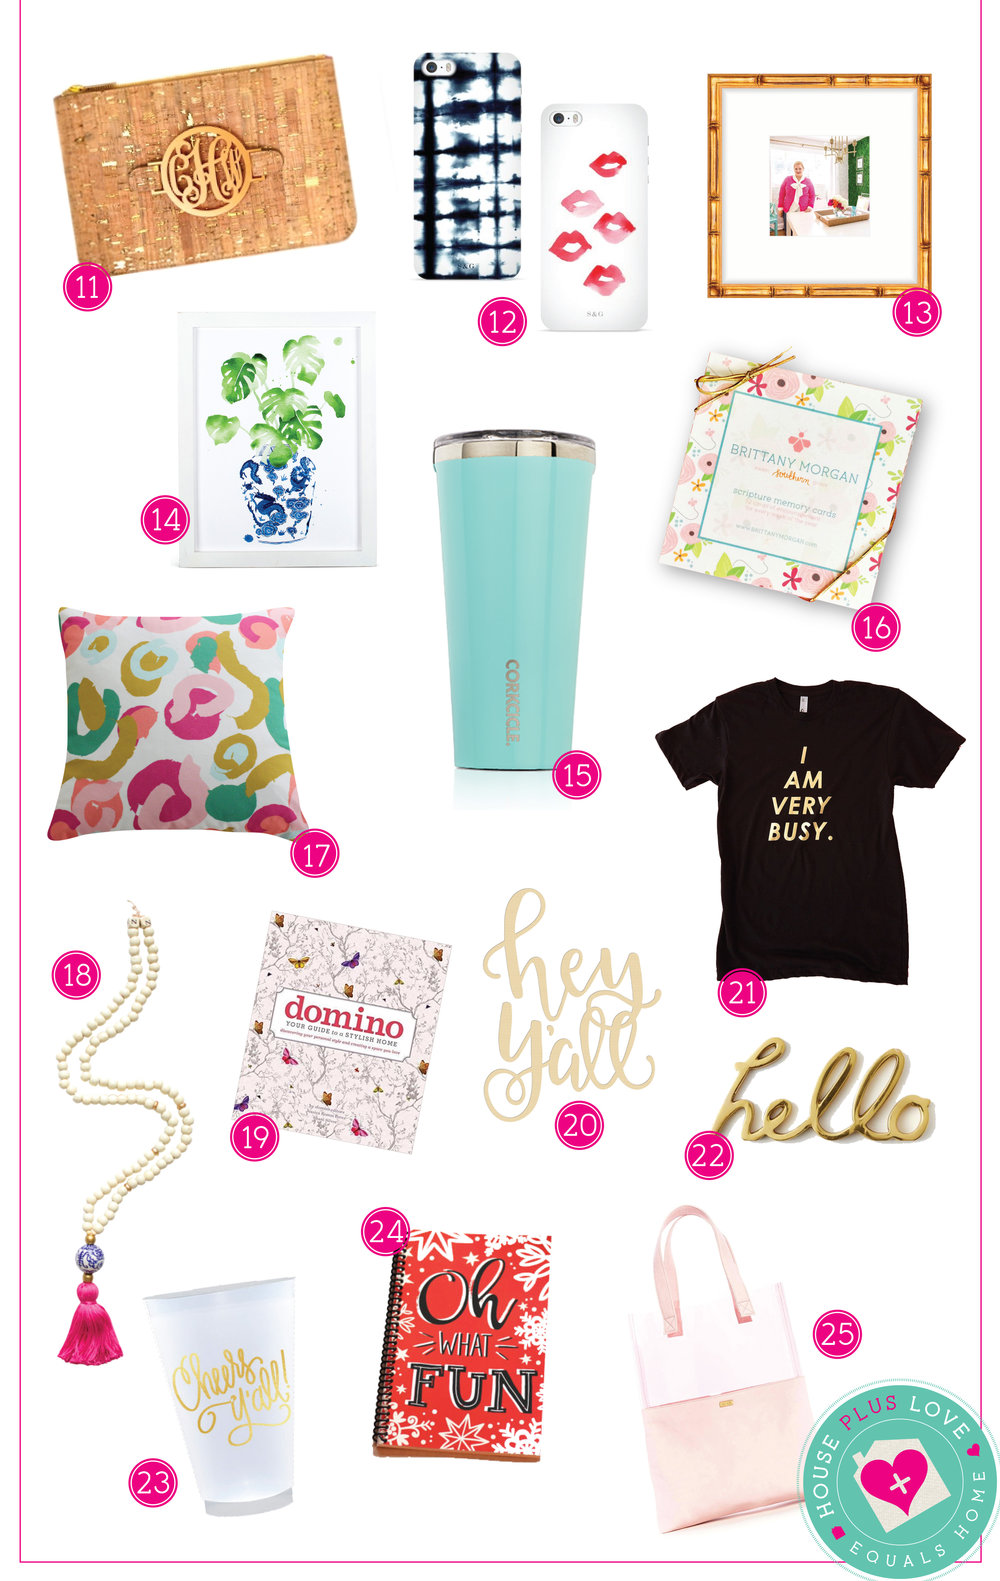 House Plus Love Gift Guide 2016 page 2